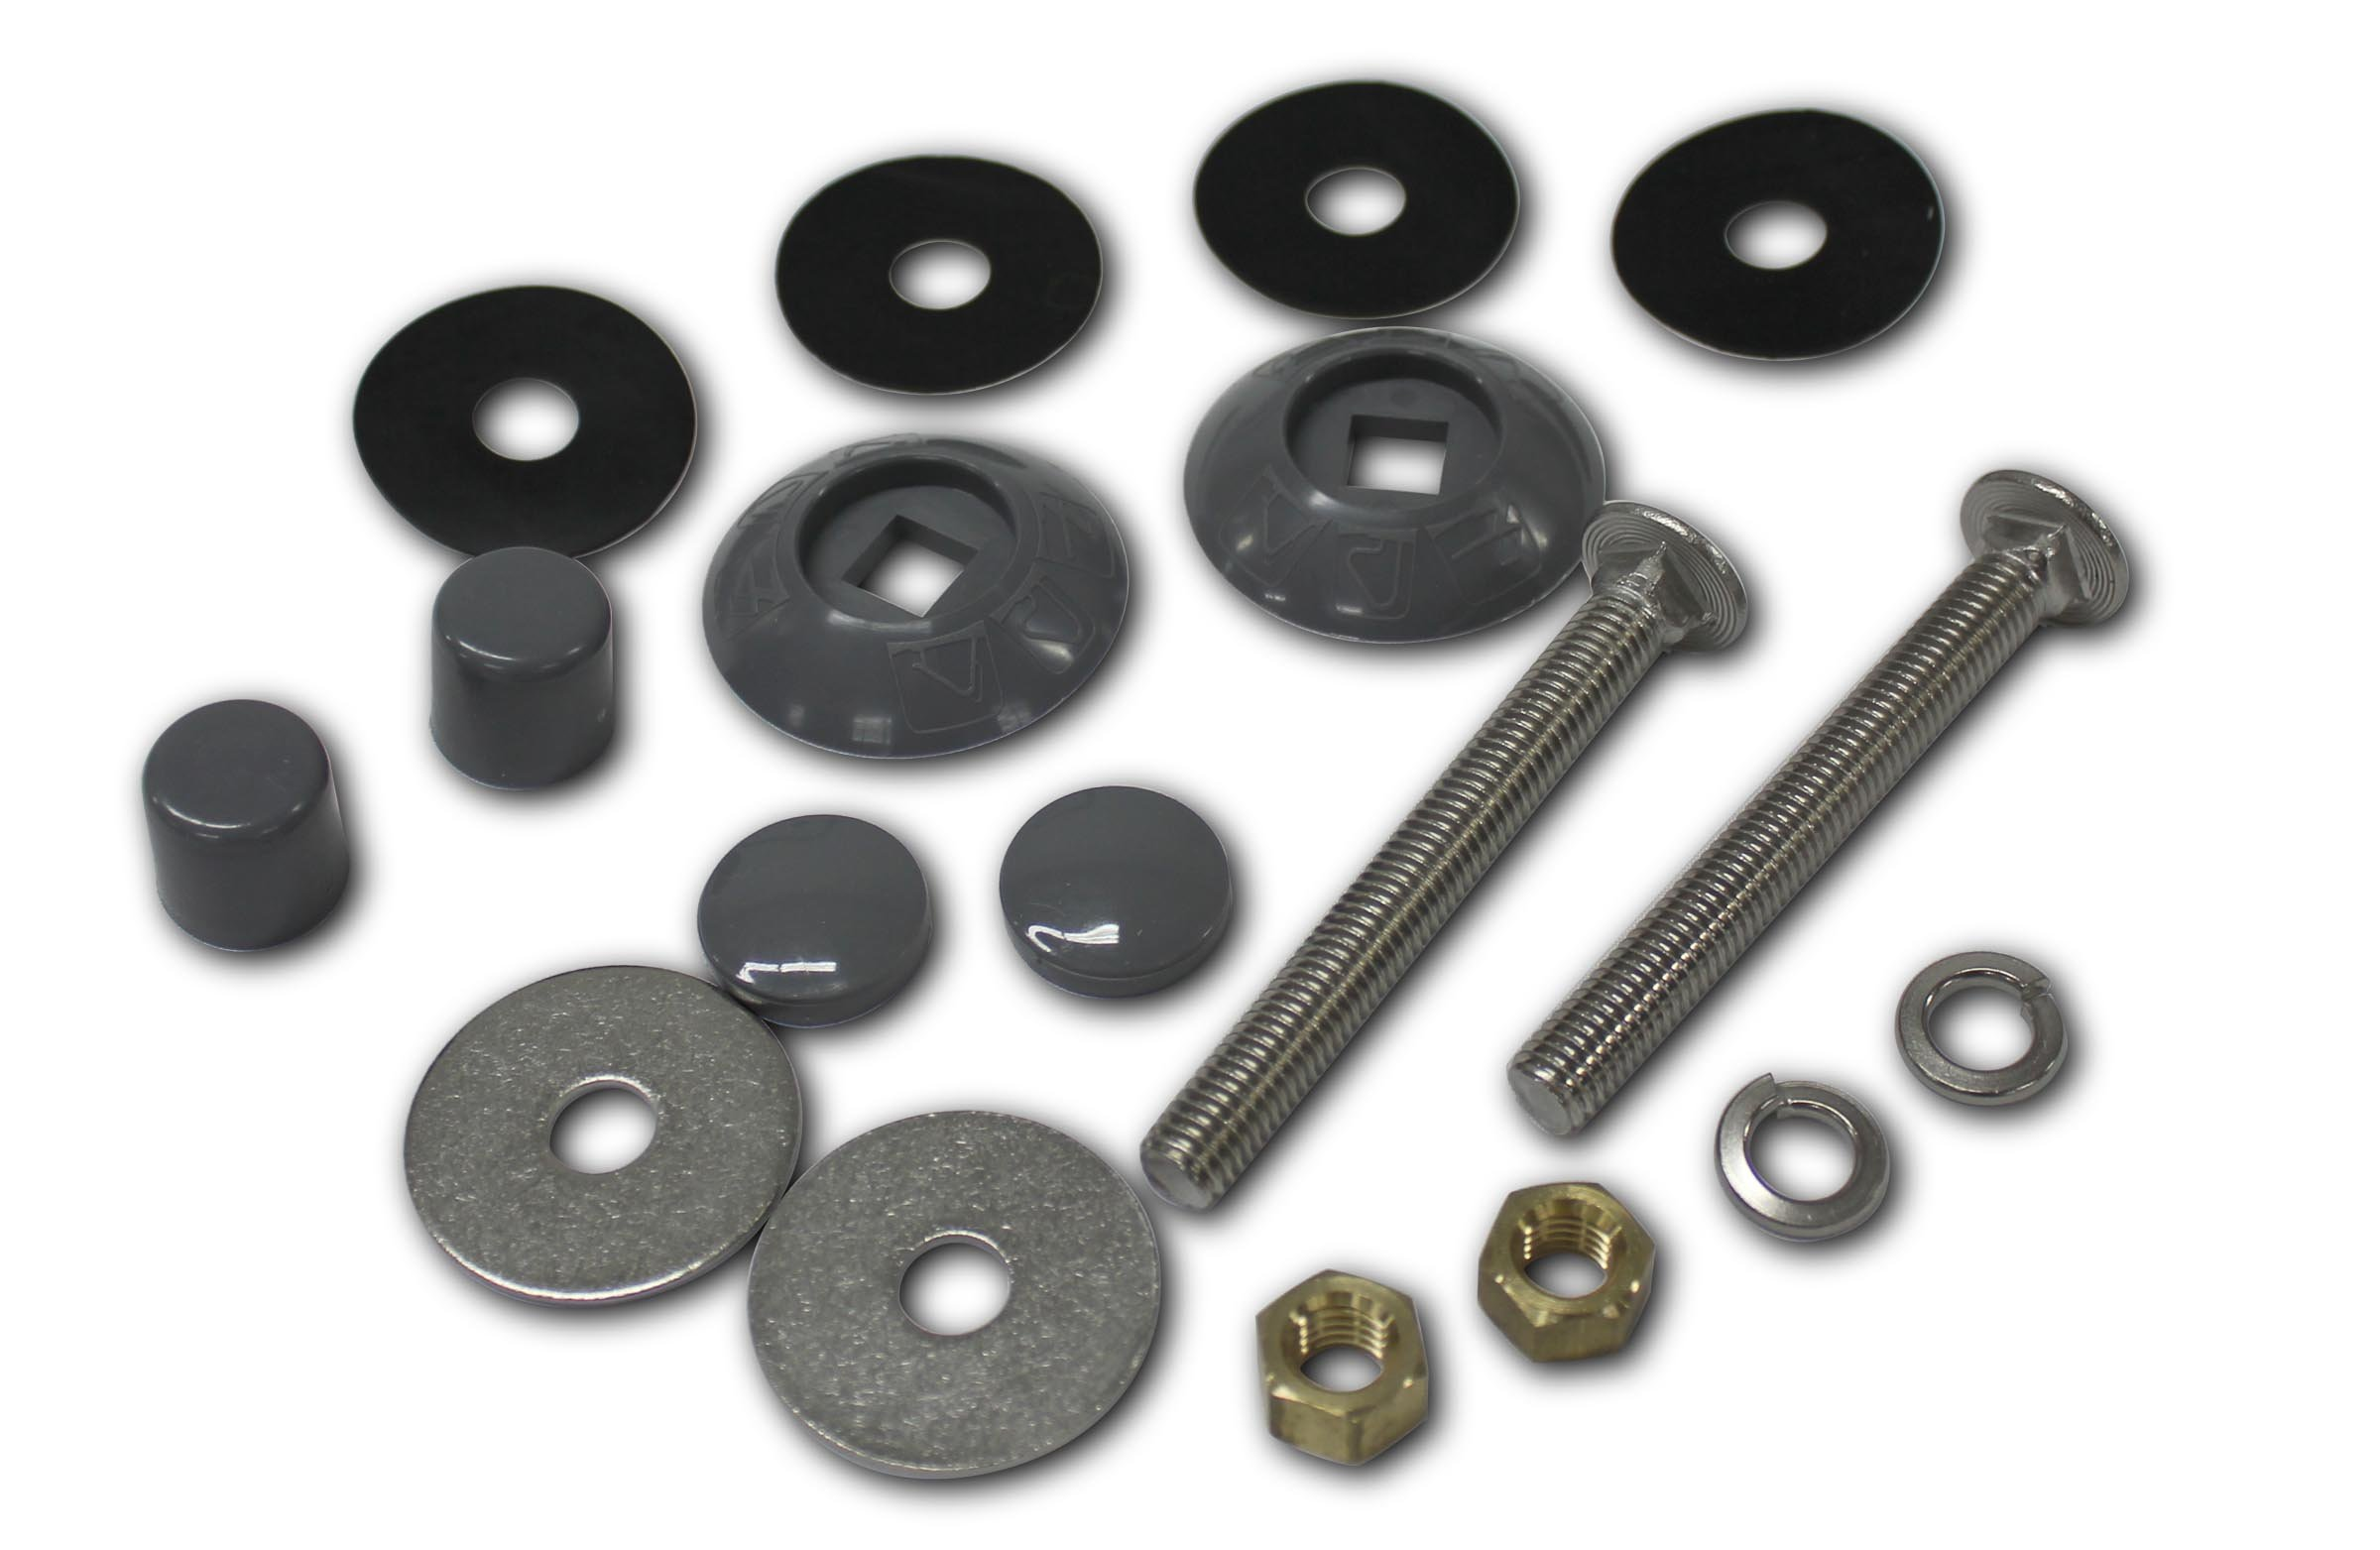 S.R.Smith 67-209-911-SS-PG Residential Diving Board Mounting Kit, Pewter Gray by S.R. Smith